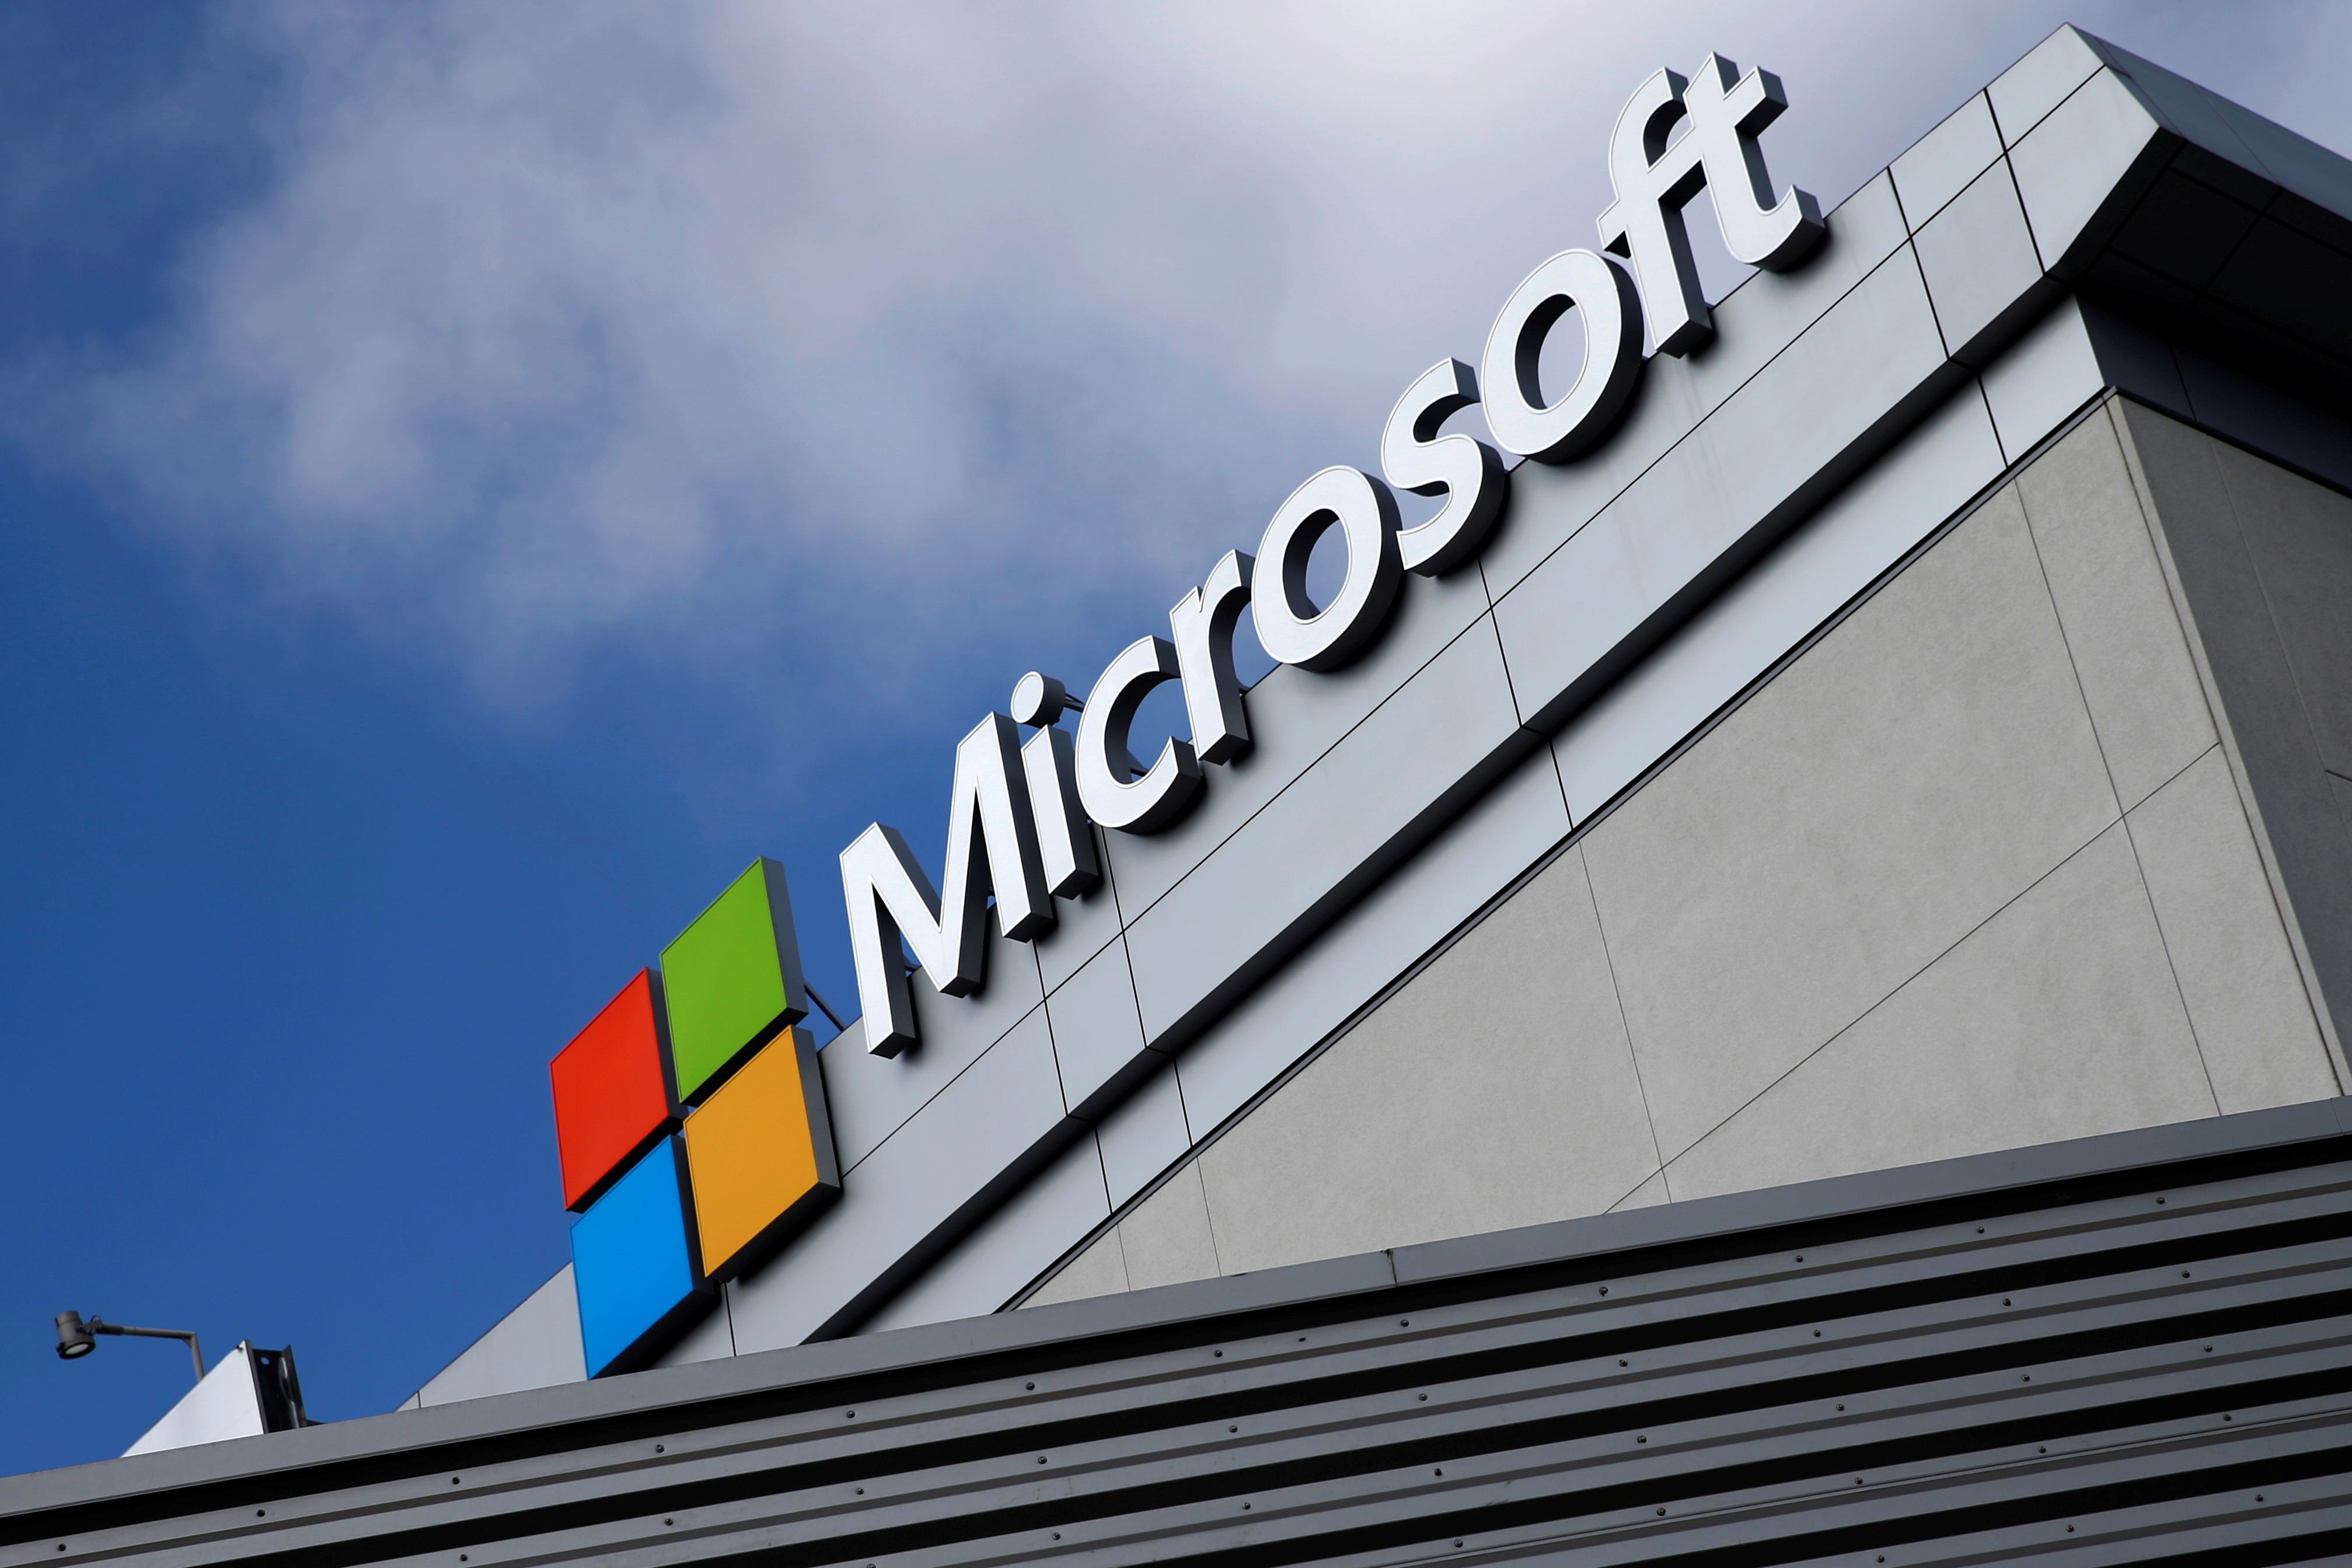 A Microsoft logo is seen a day after Microsoft Corp's $26.2 billion purchase of LinkedIn Corp, in Los Angeles, California, U.S. June 14, 2016. REUTERS/Lucy Nicholson/File Photo